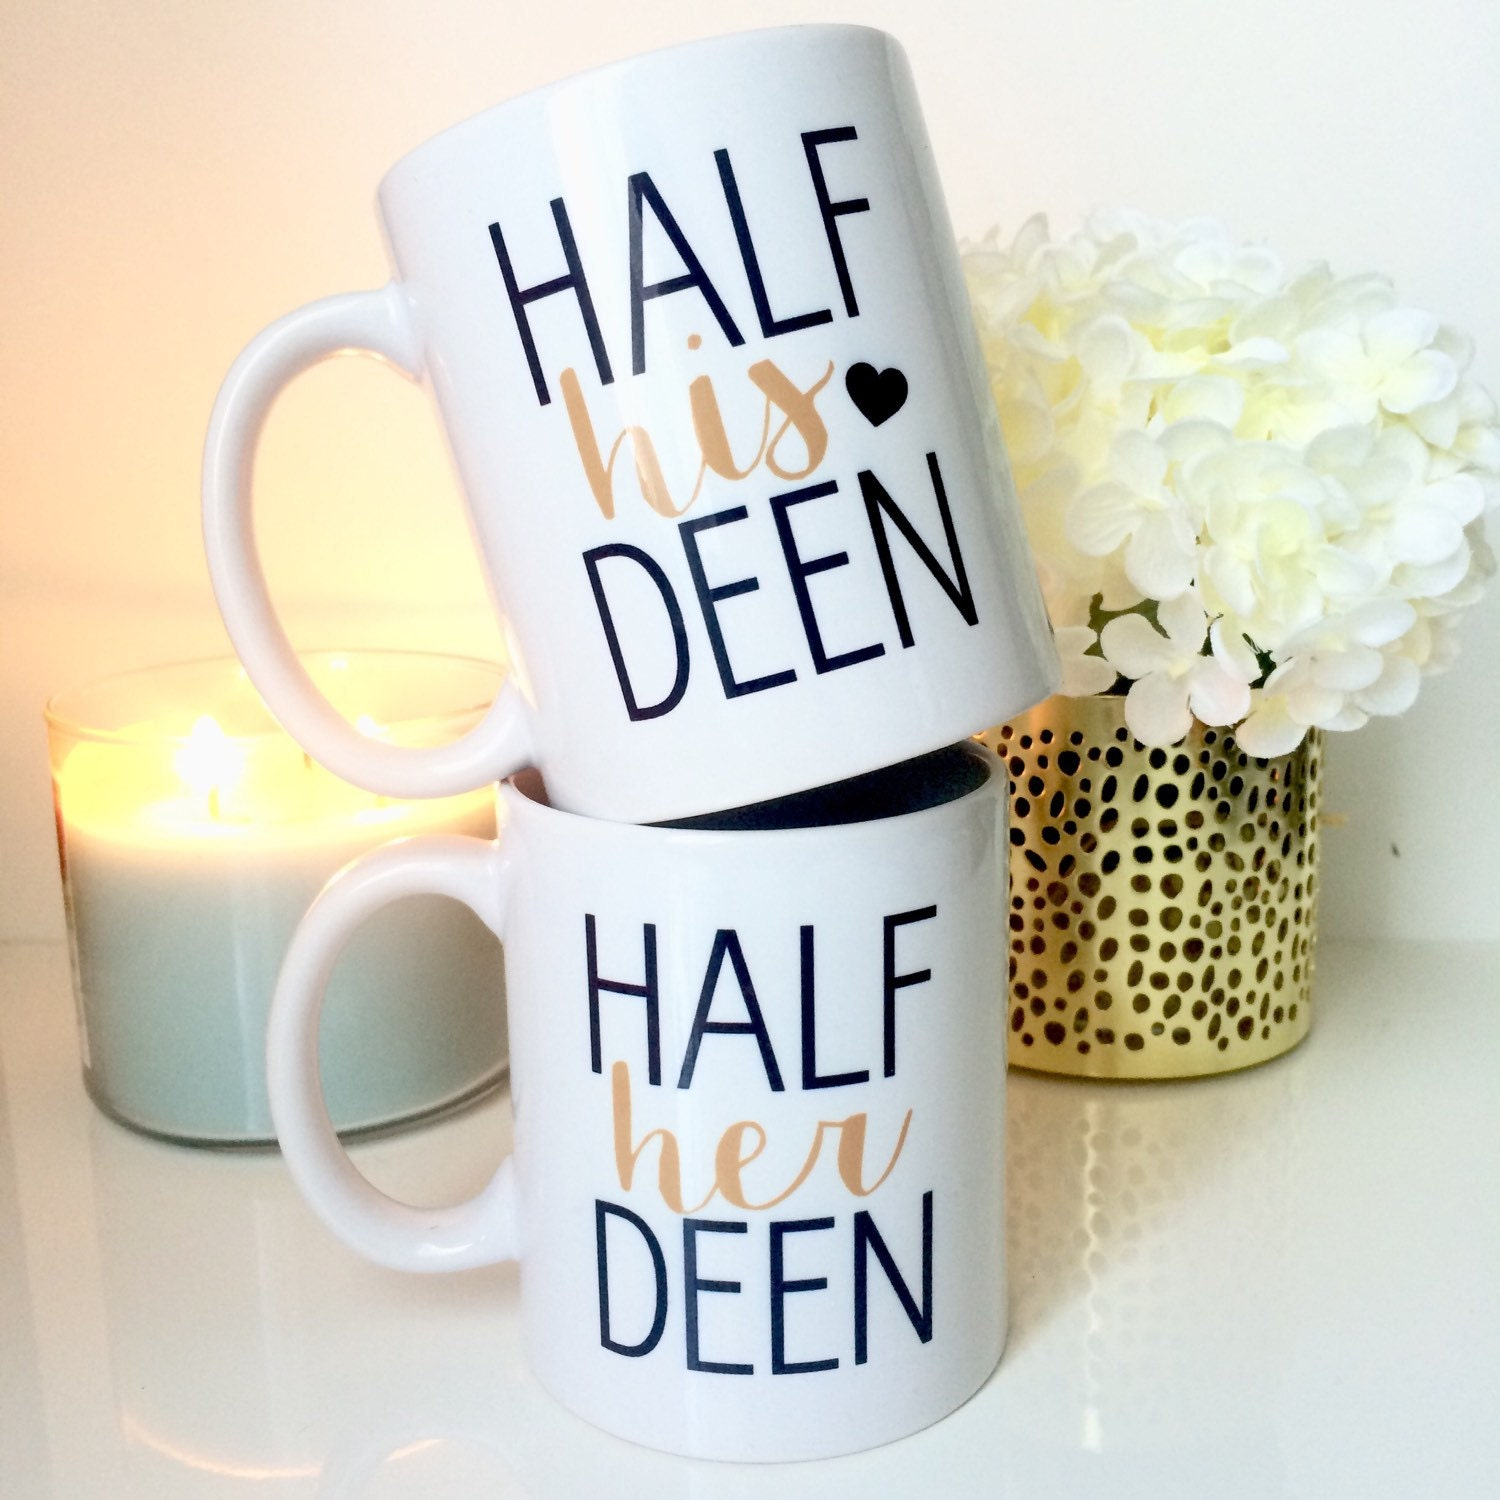 His And Her Wedding Gifts Ideas : Set Half his deen & half her deen couples mug duo